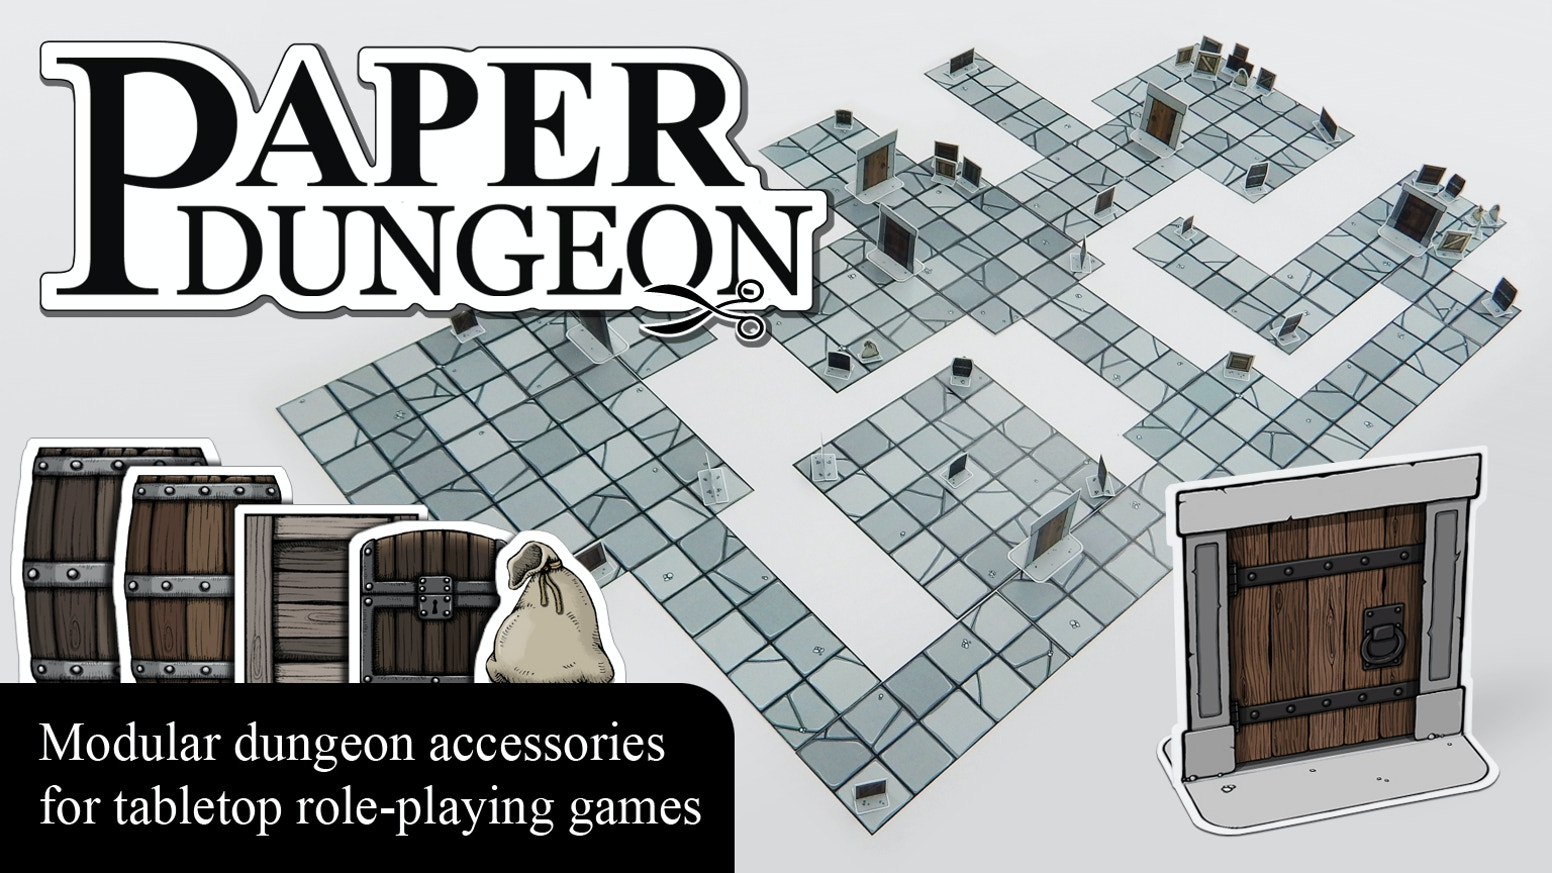 Paper Dungeon | Modular dungeon accessories for tabletop RPG